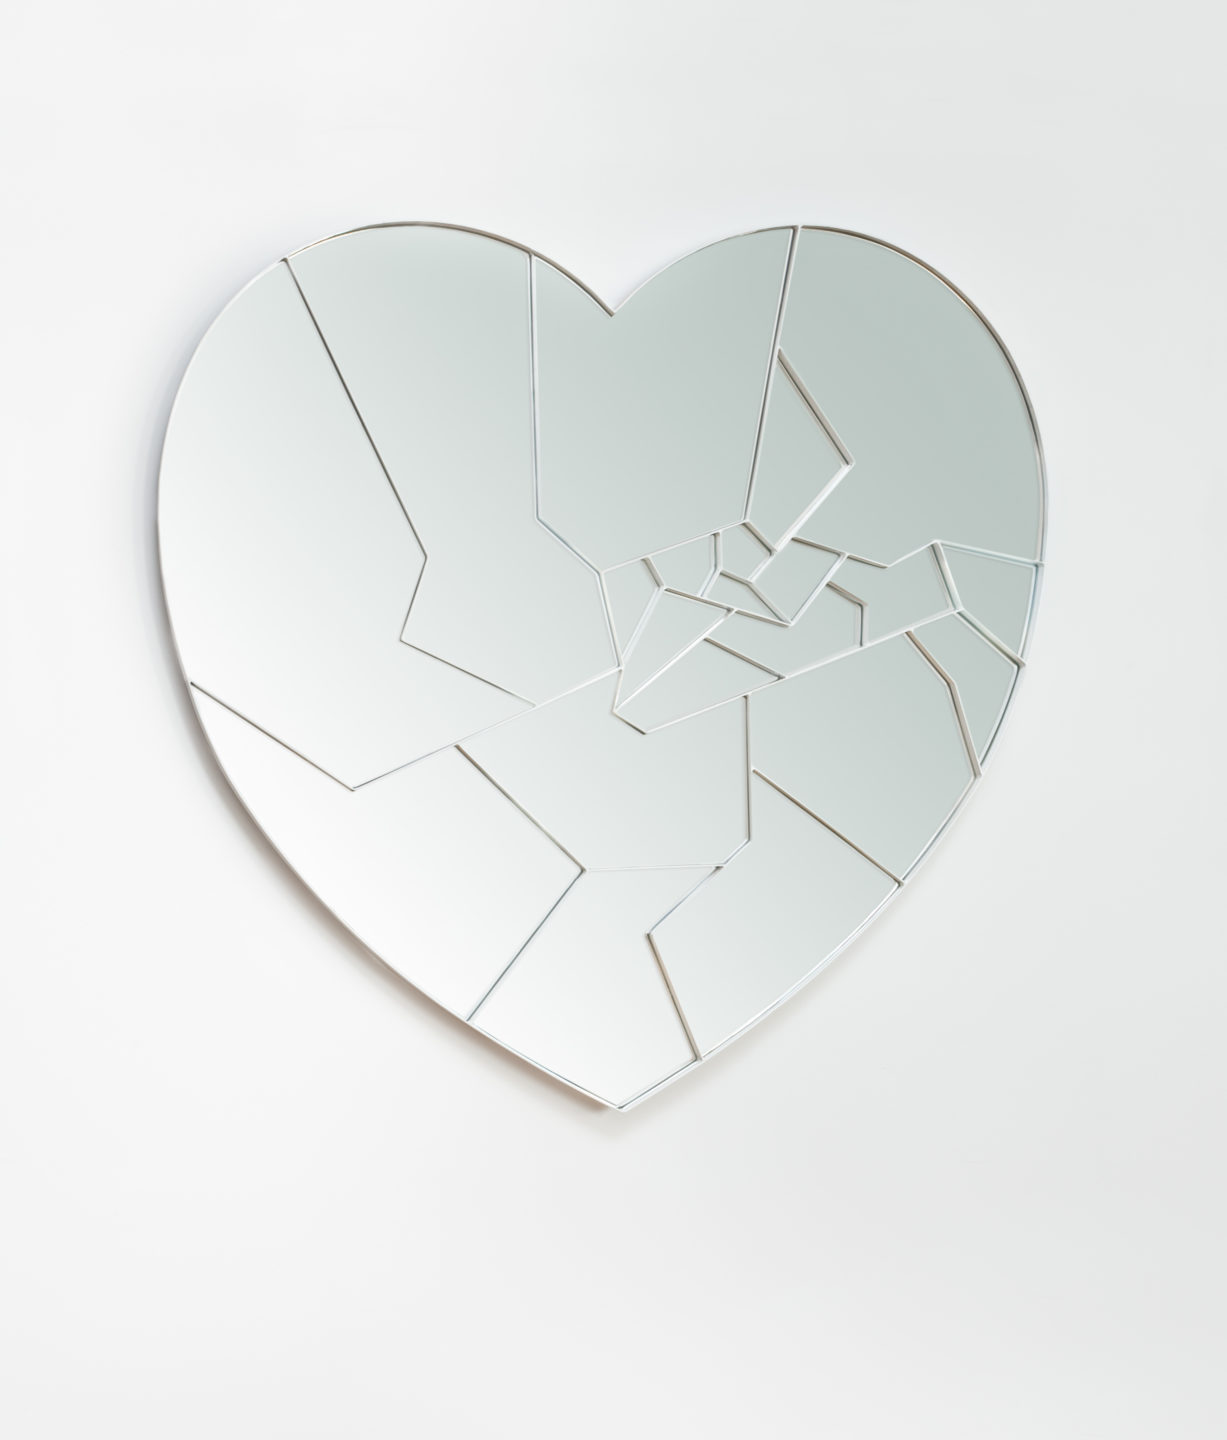 WILD-AT-HEART-mirror-3-nicole-fuller-product-information